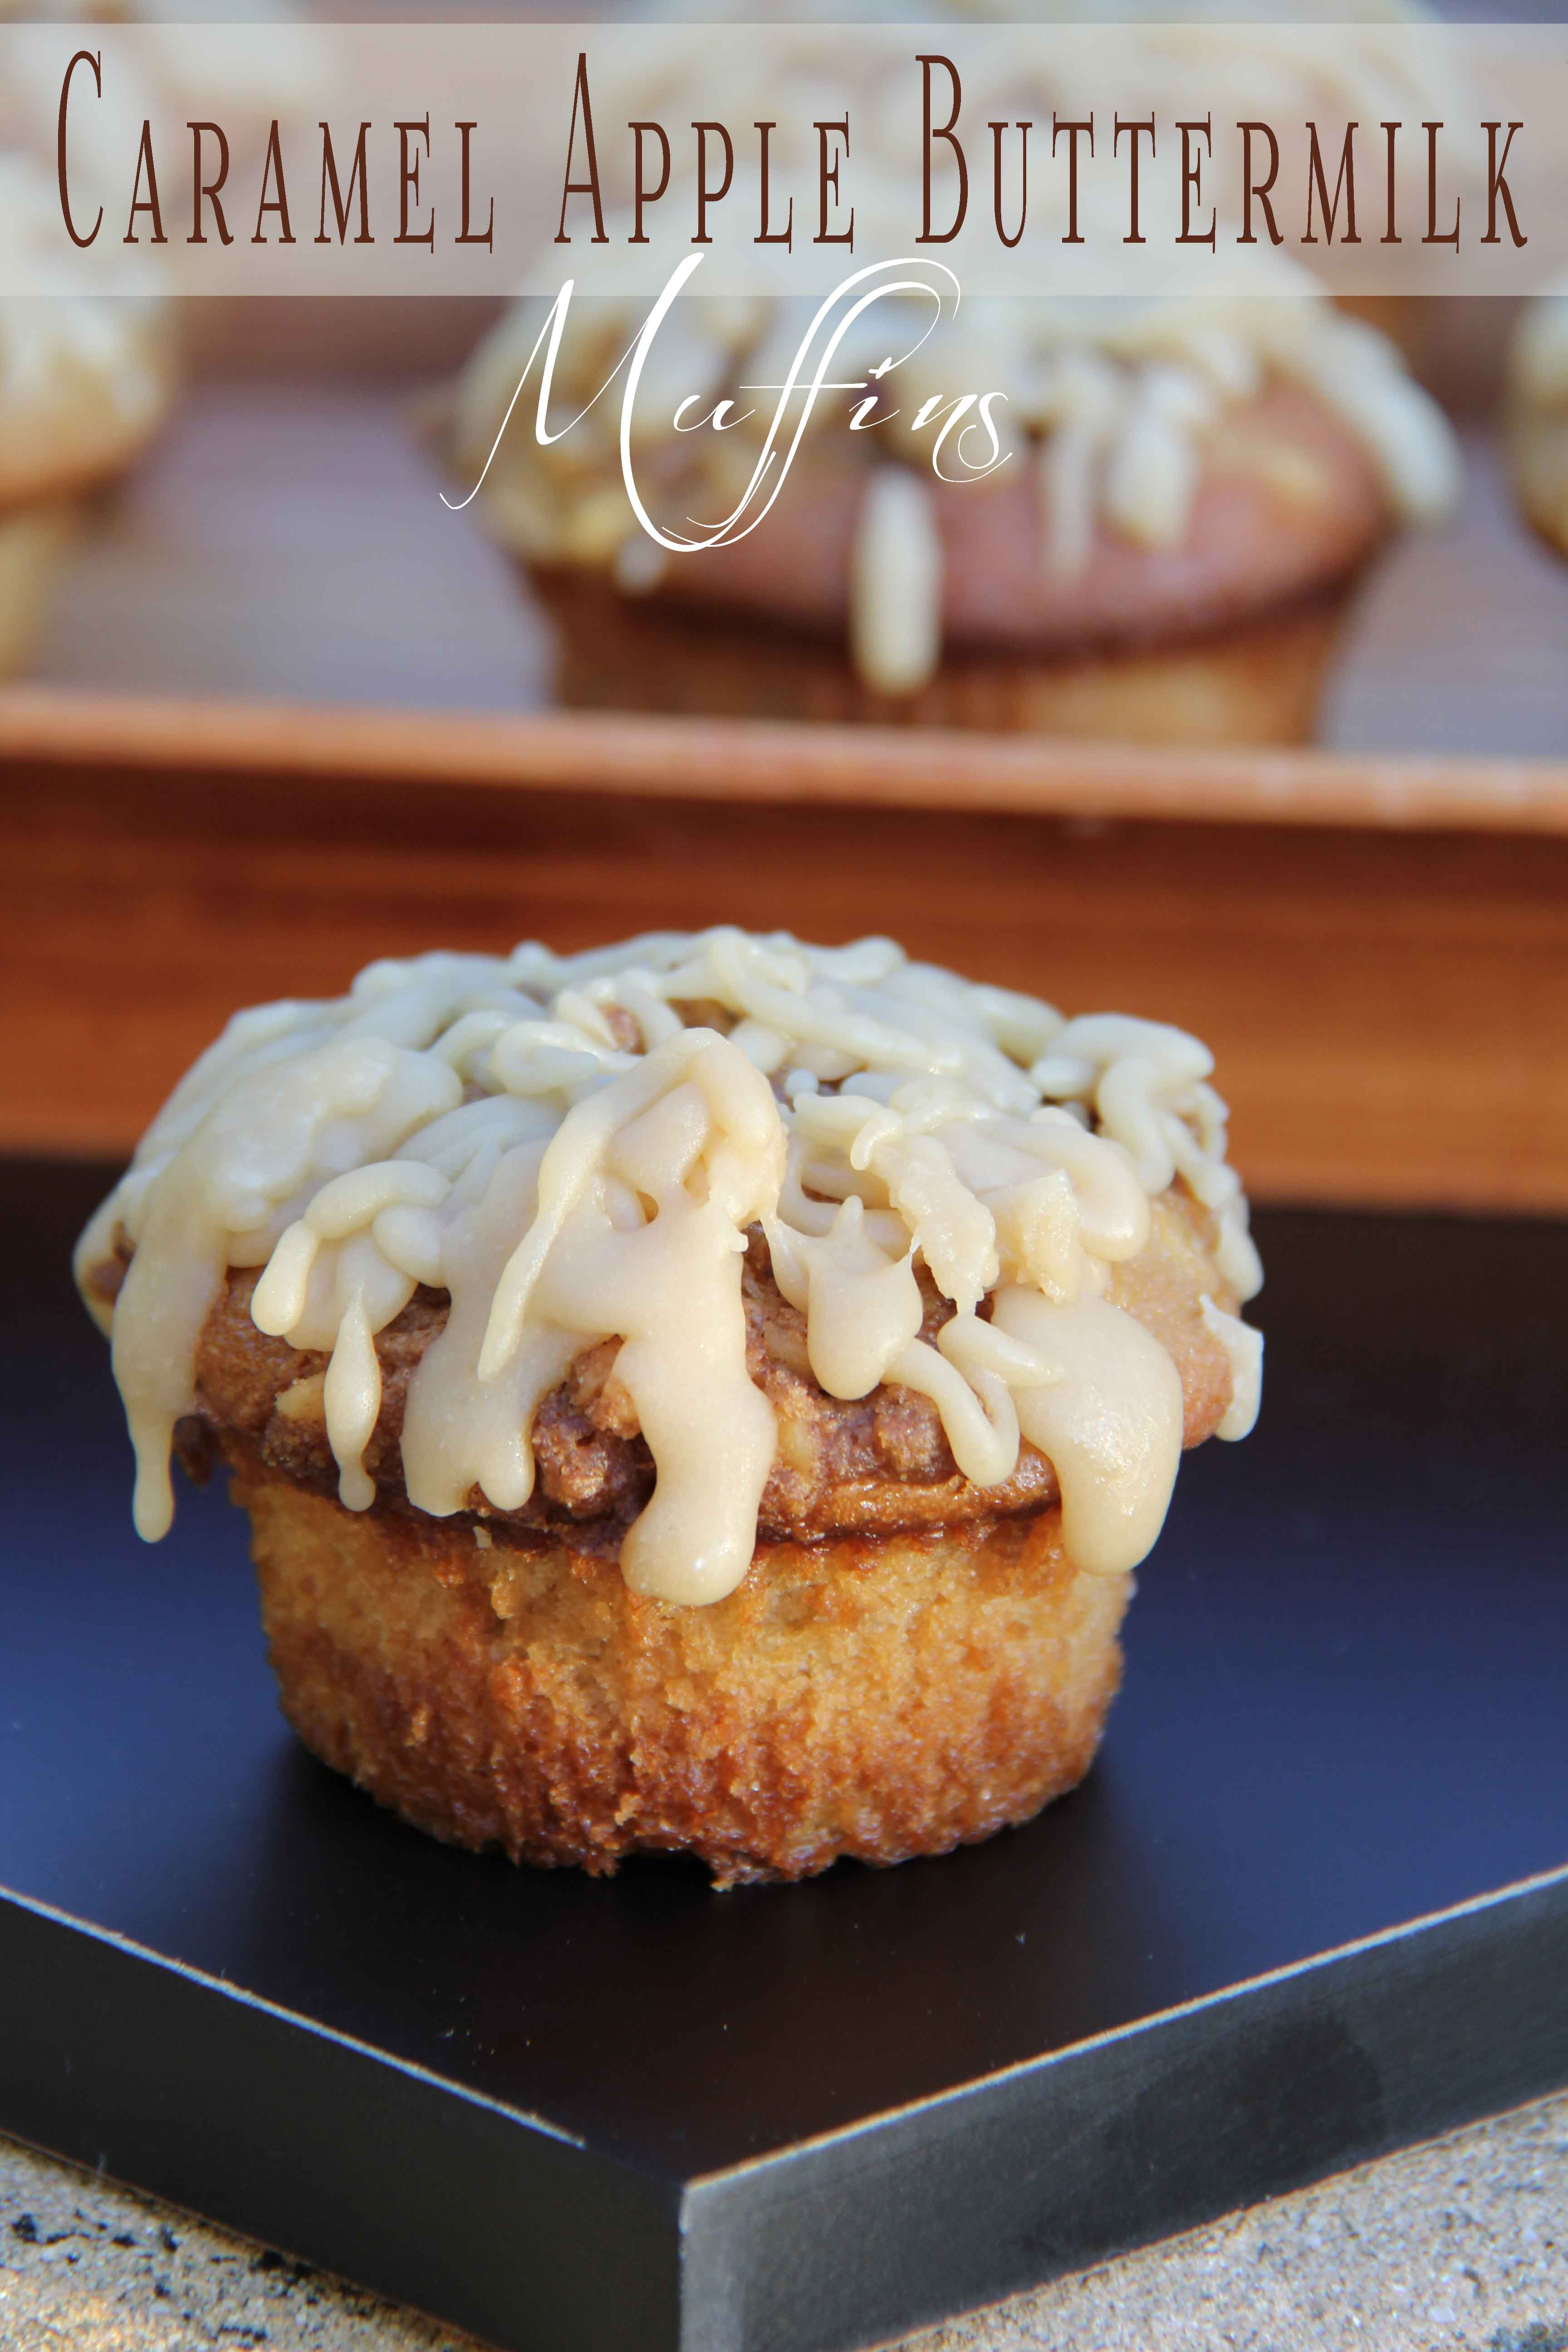 Caramel Apple Buttermilk Muffins -  I don't make homemade muffins very often. But that is going to change! My husband LOVED these! They are perfect to put in the kids lunches. #Recipe #Muffin #Caramel